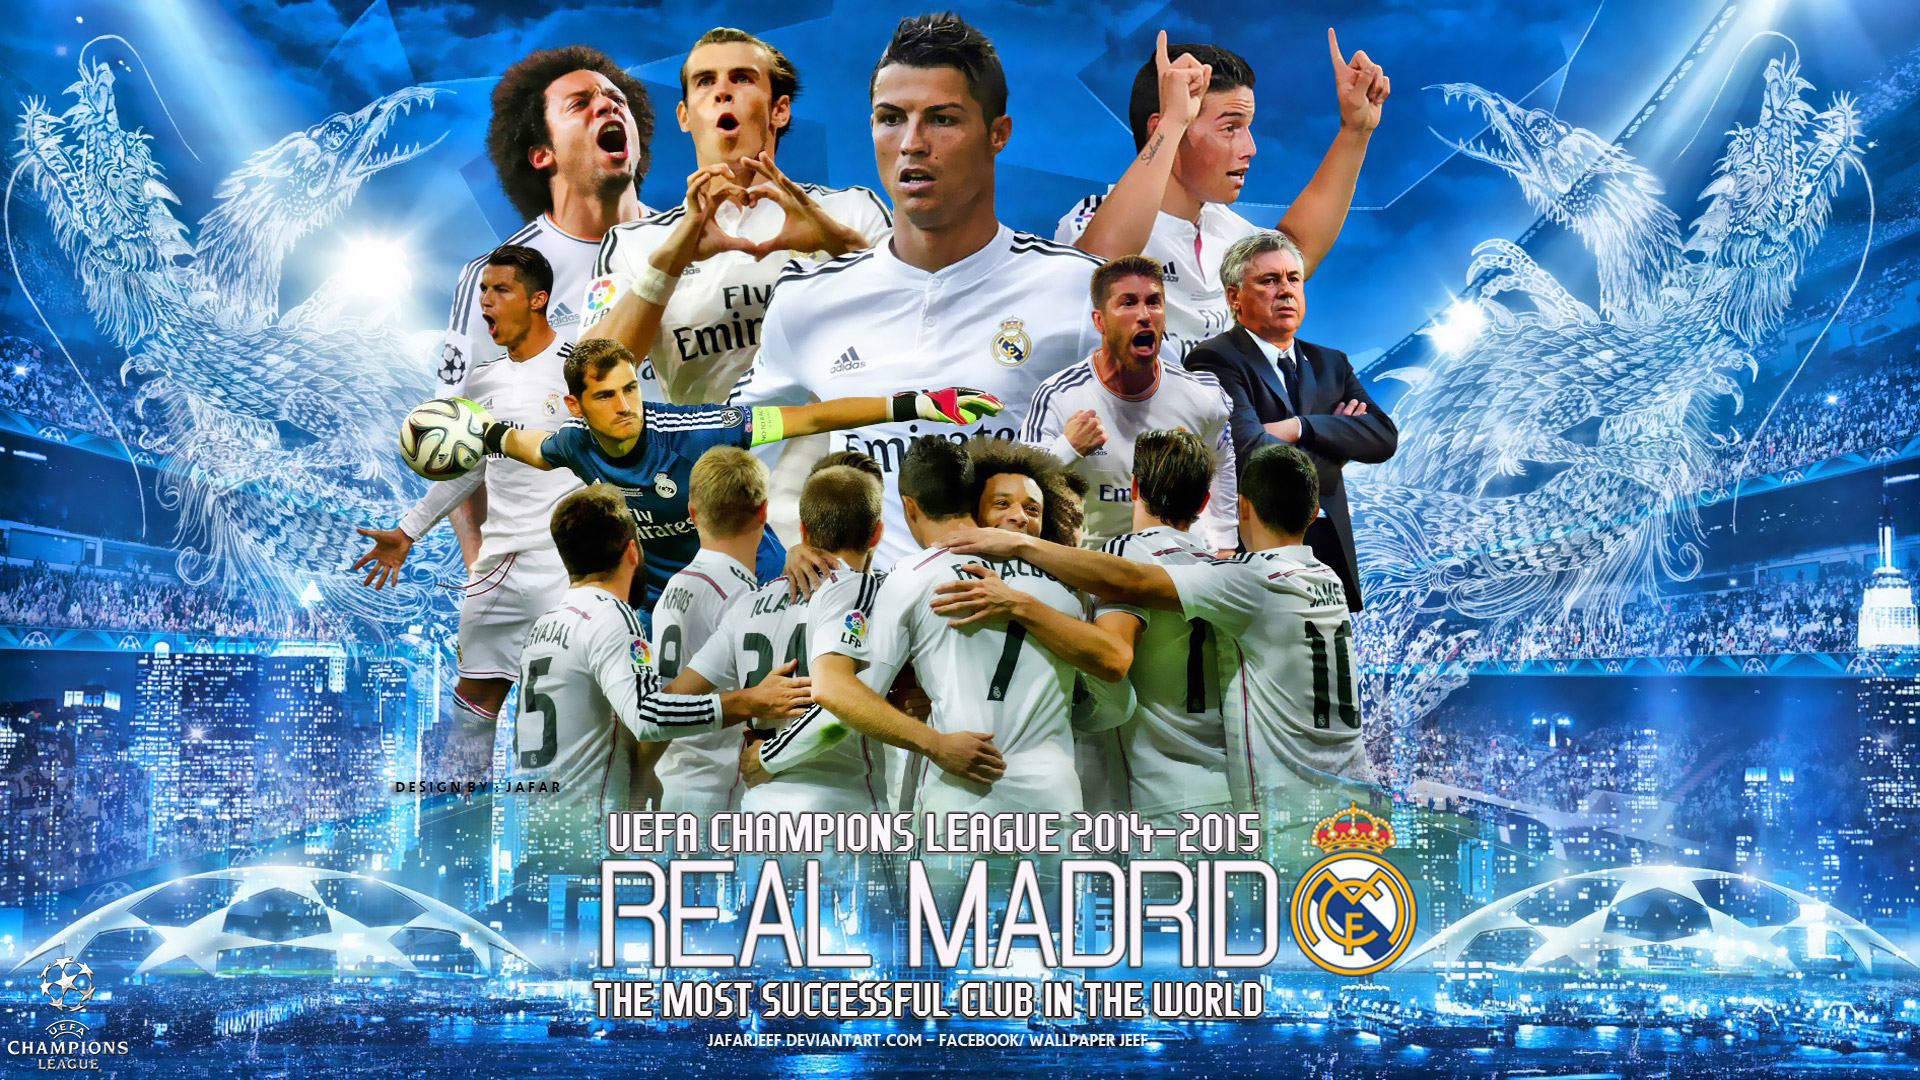 Wallpapers   Real Madrid 2015 Champions League wallpaper 1920x1080